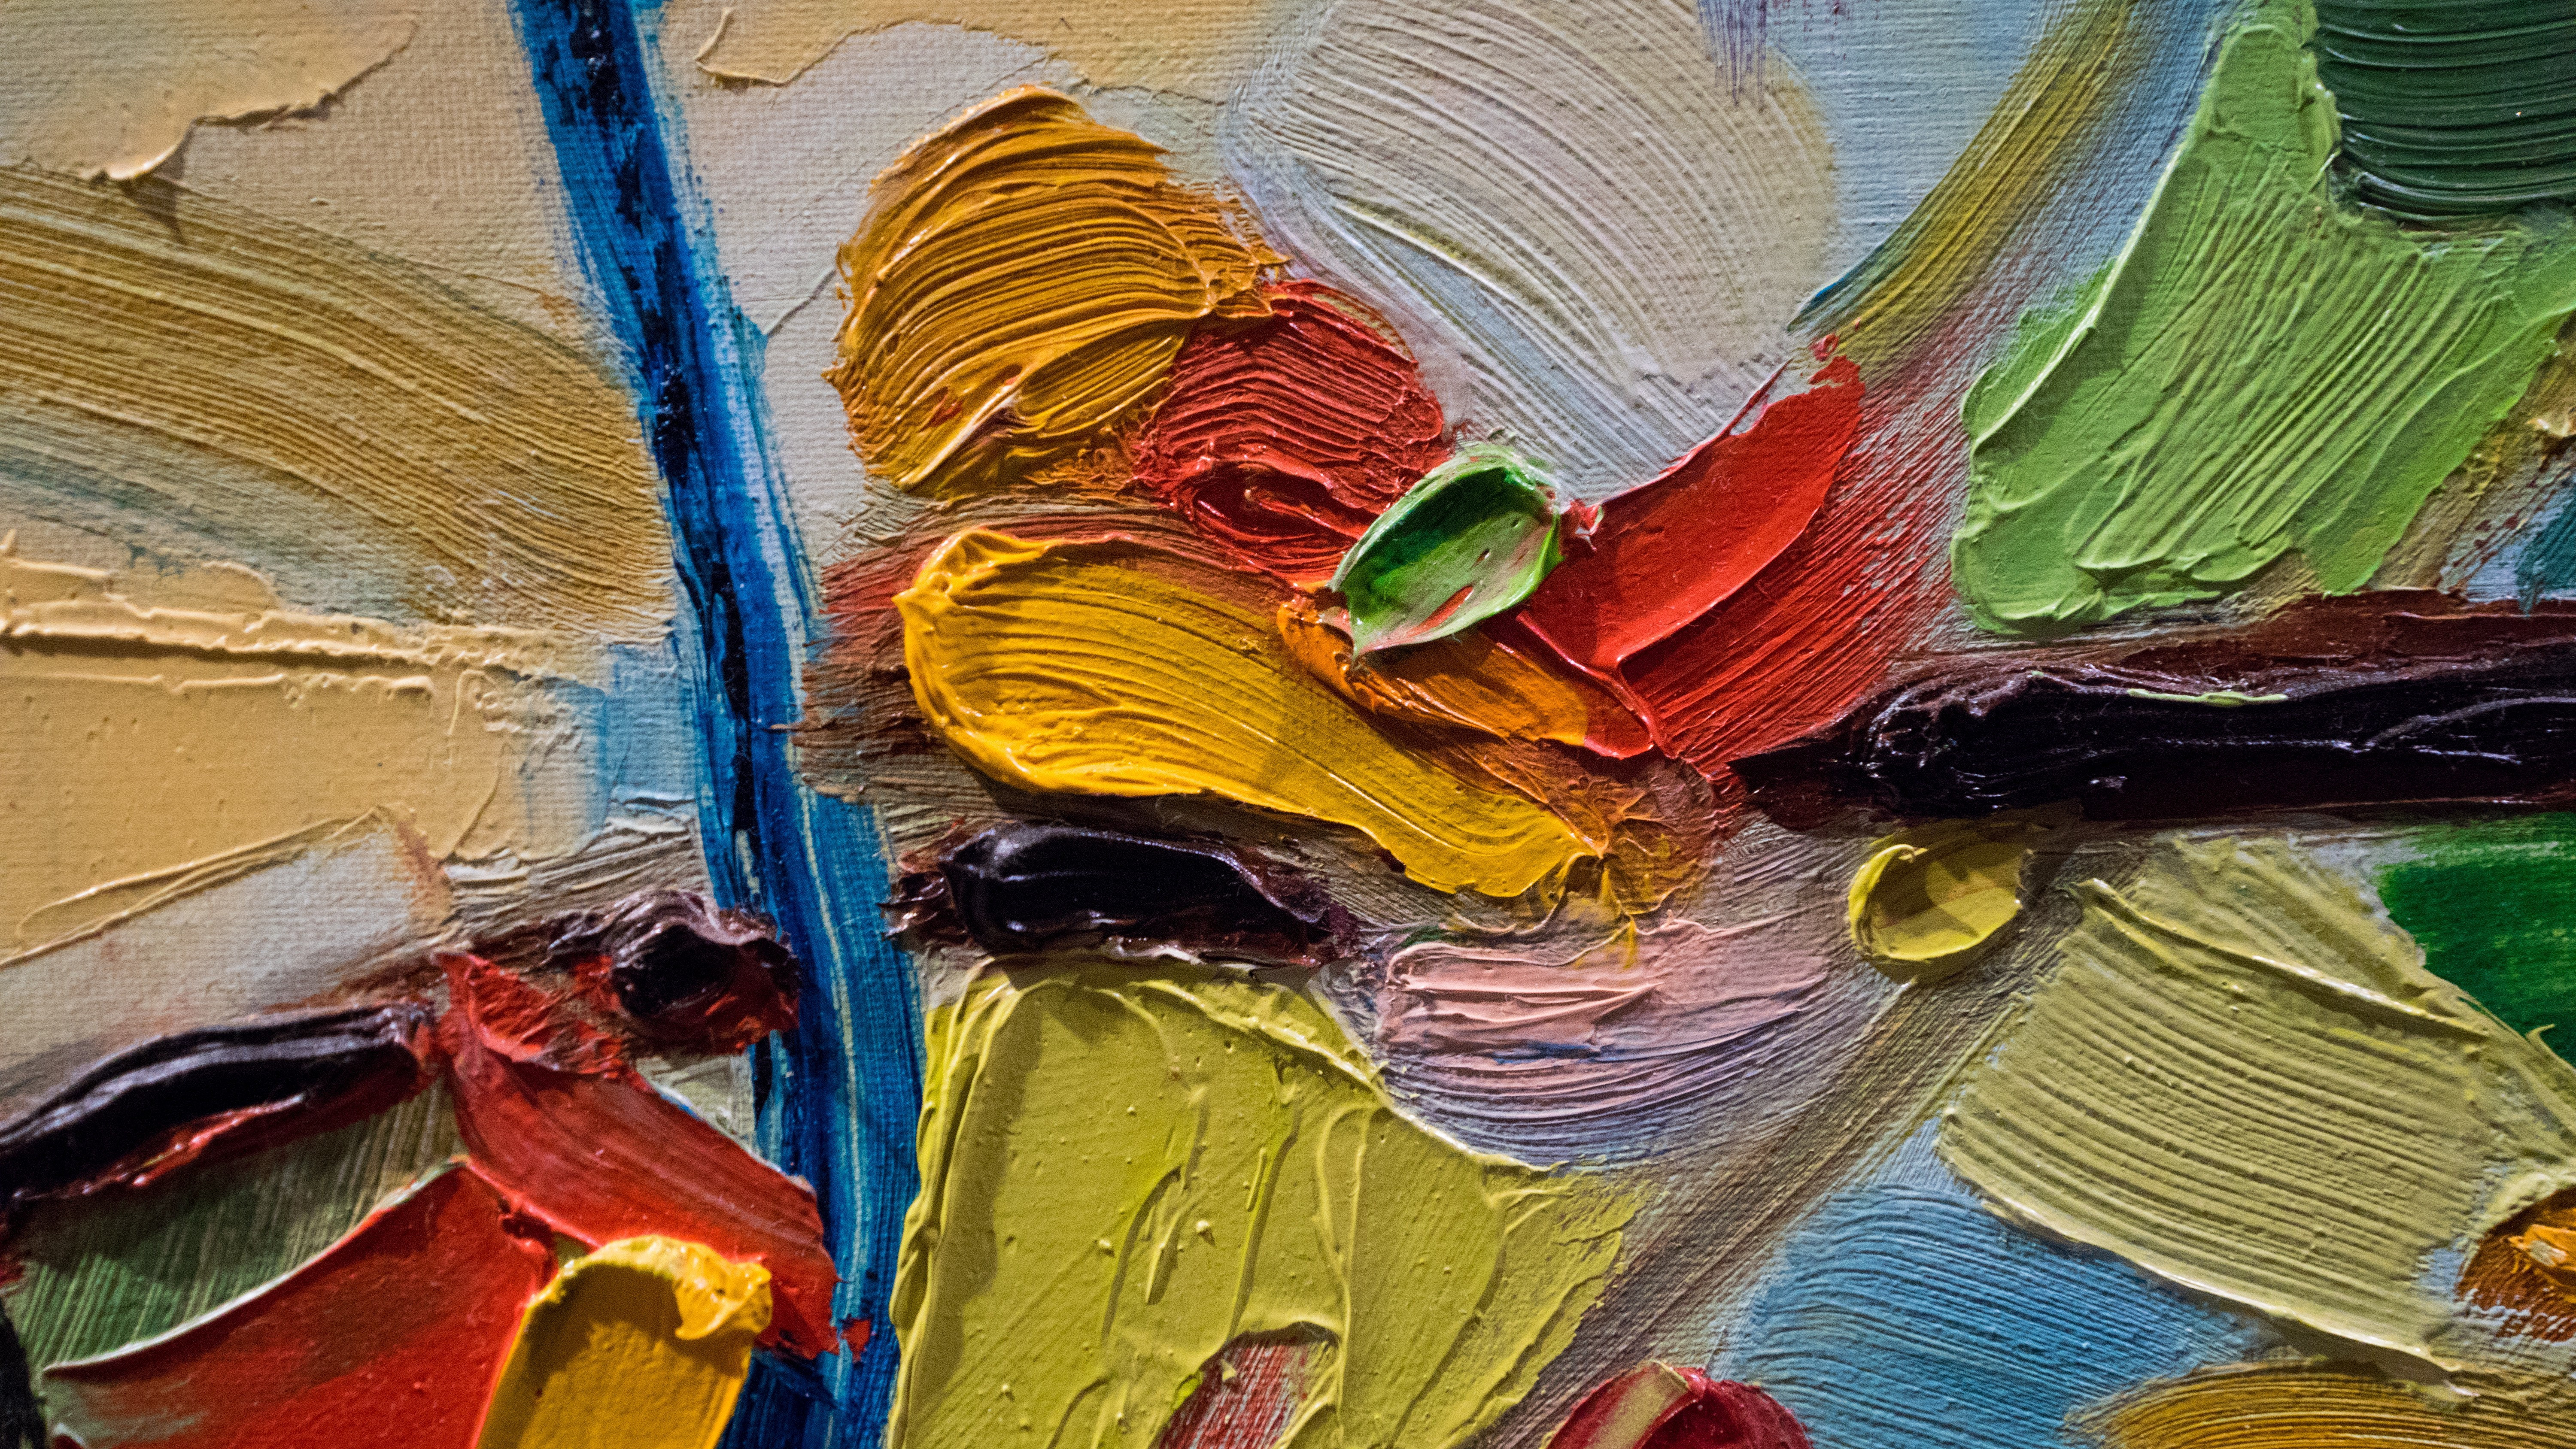 Oil Painting Images Download: How To Take A Good Care And Storage Tips For Your Oil Painting